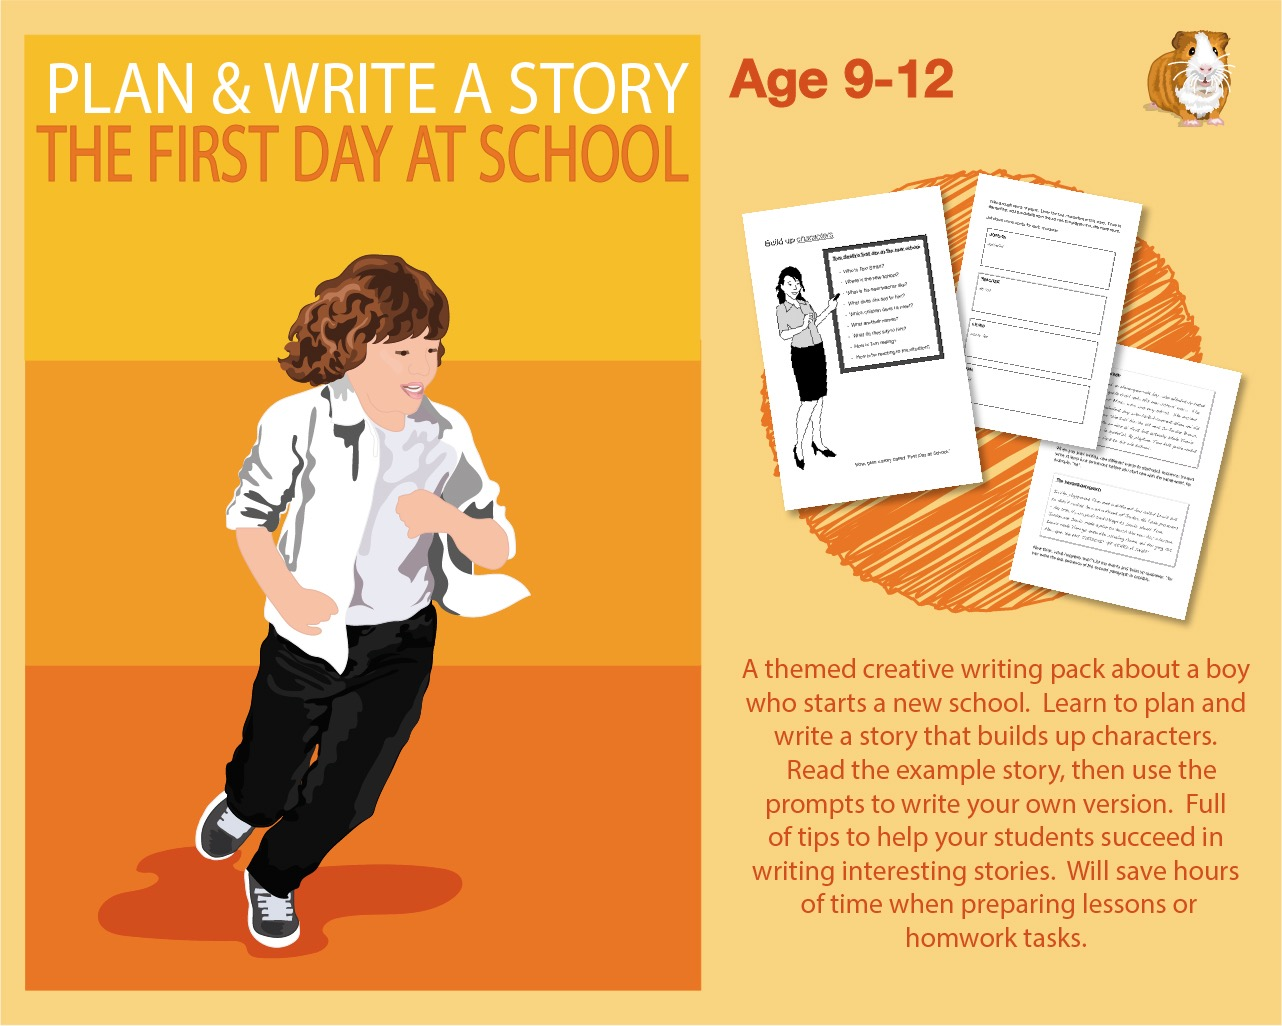 Plan And Write A Story Called 'The First Day At School' (9-13 years)